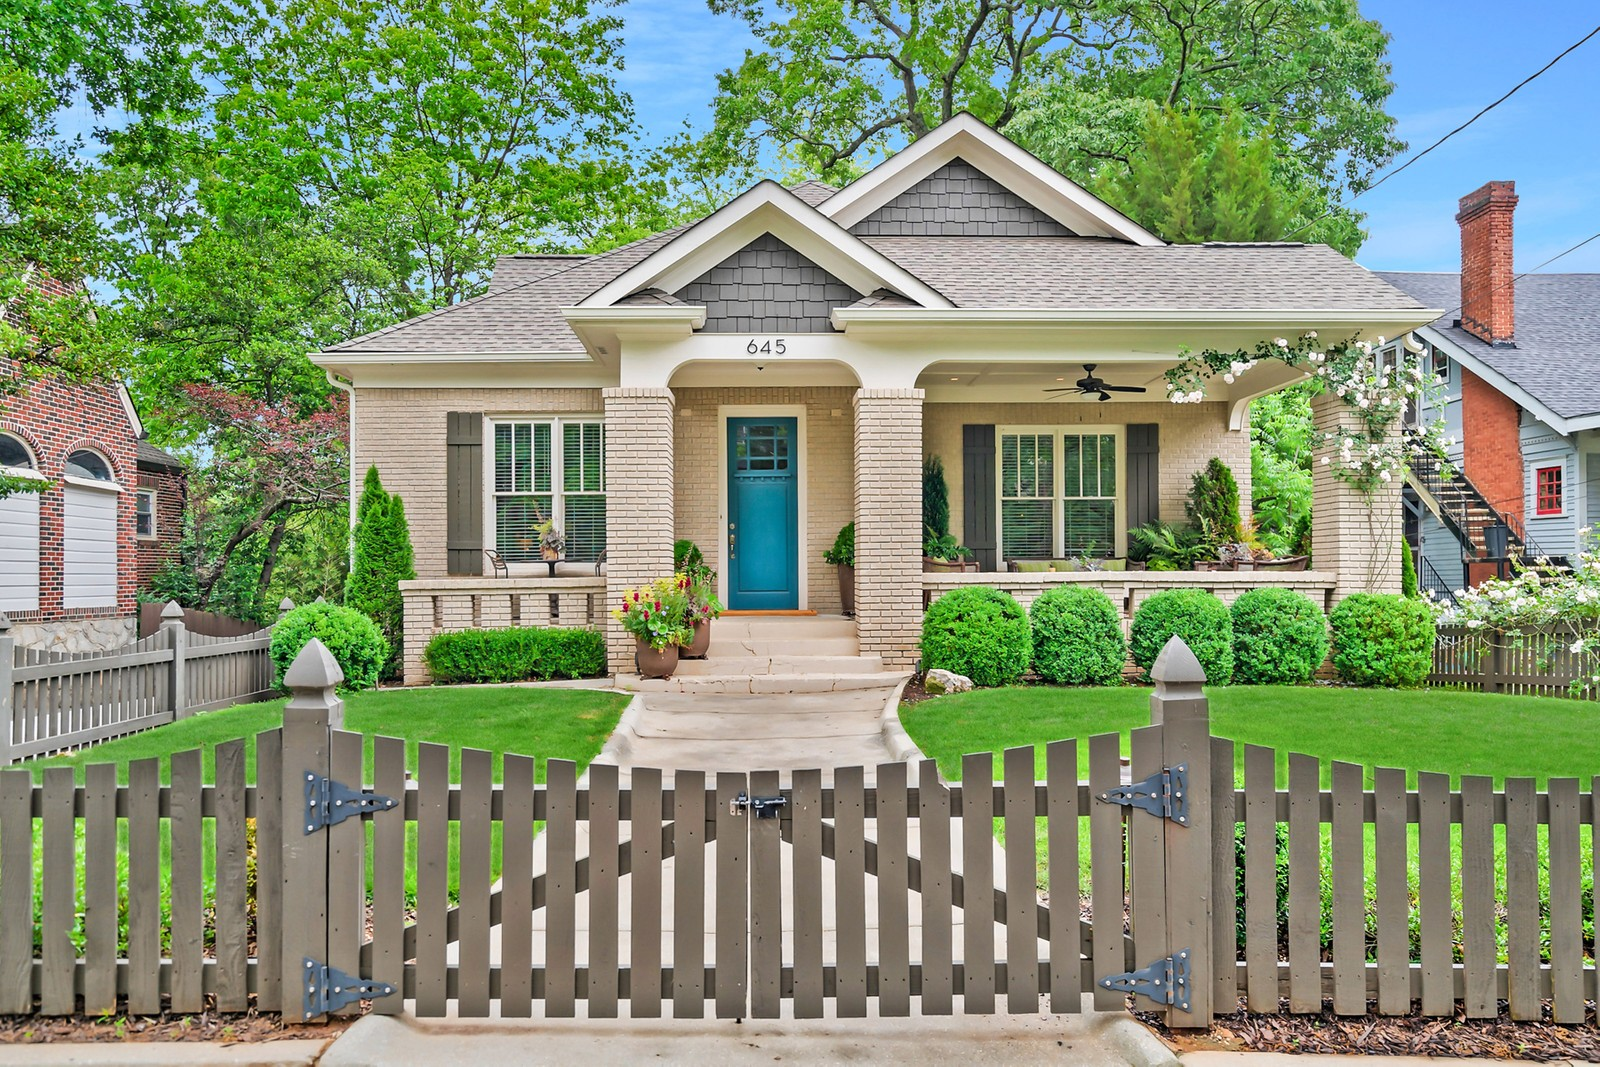 A beige brick bungalow behind lush green yard and a picket fence.